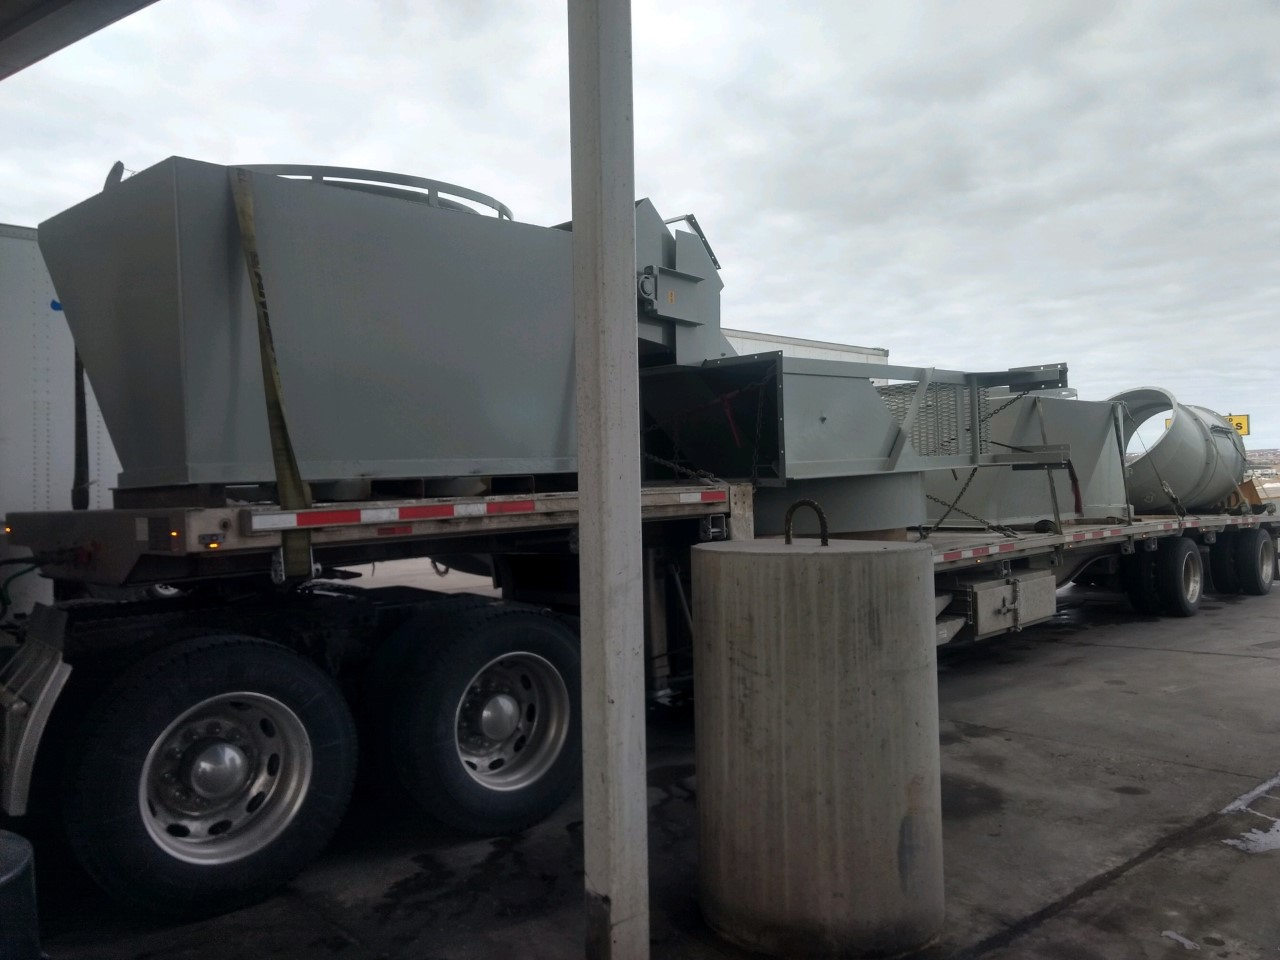 Shipping a service truck